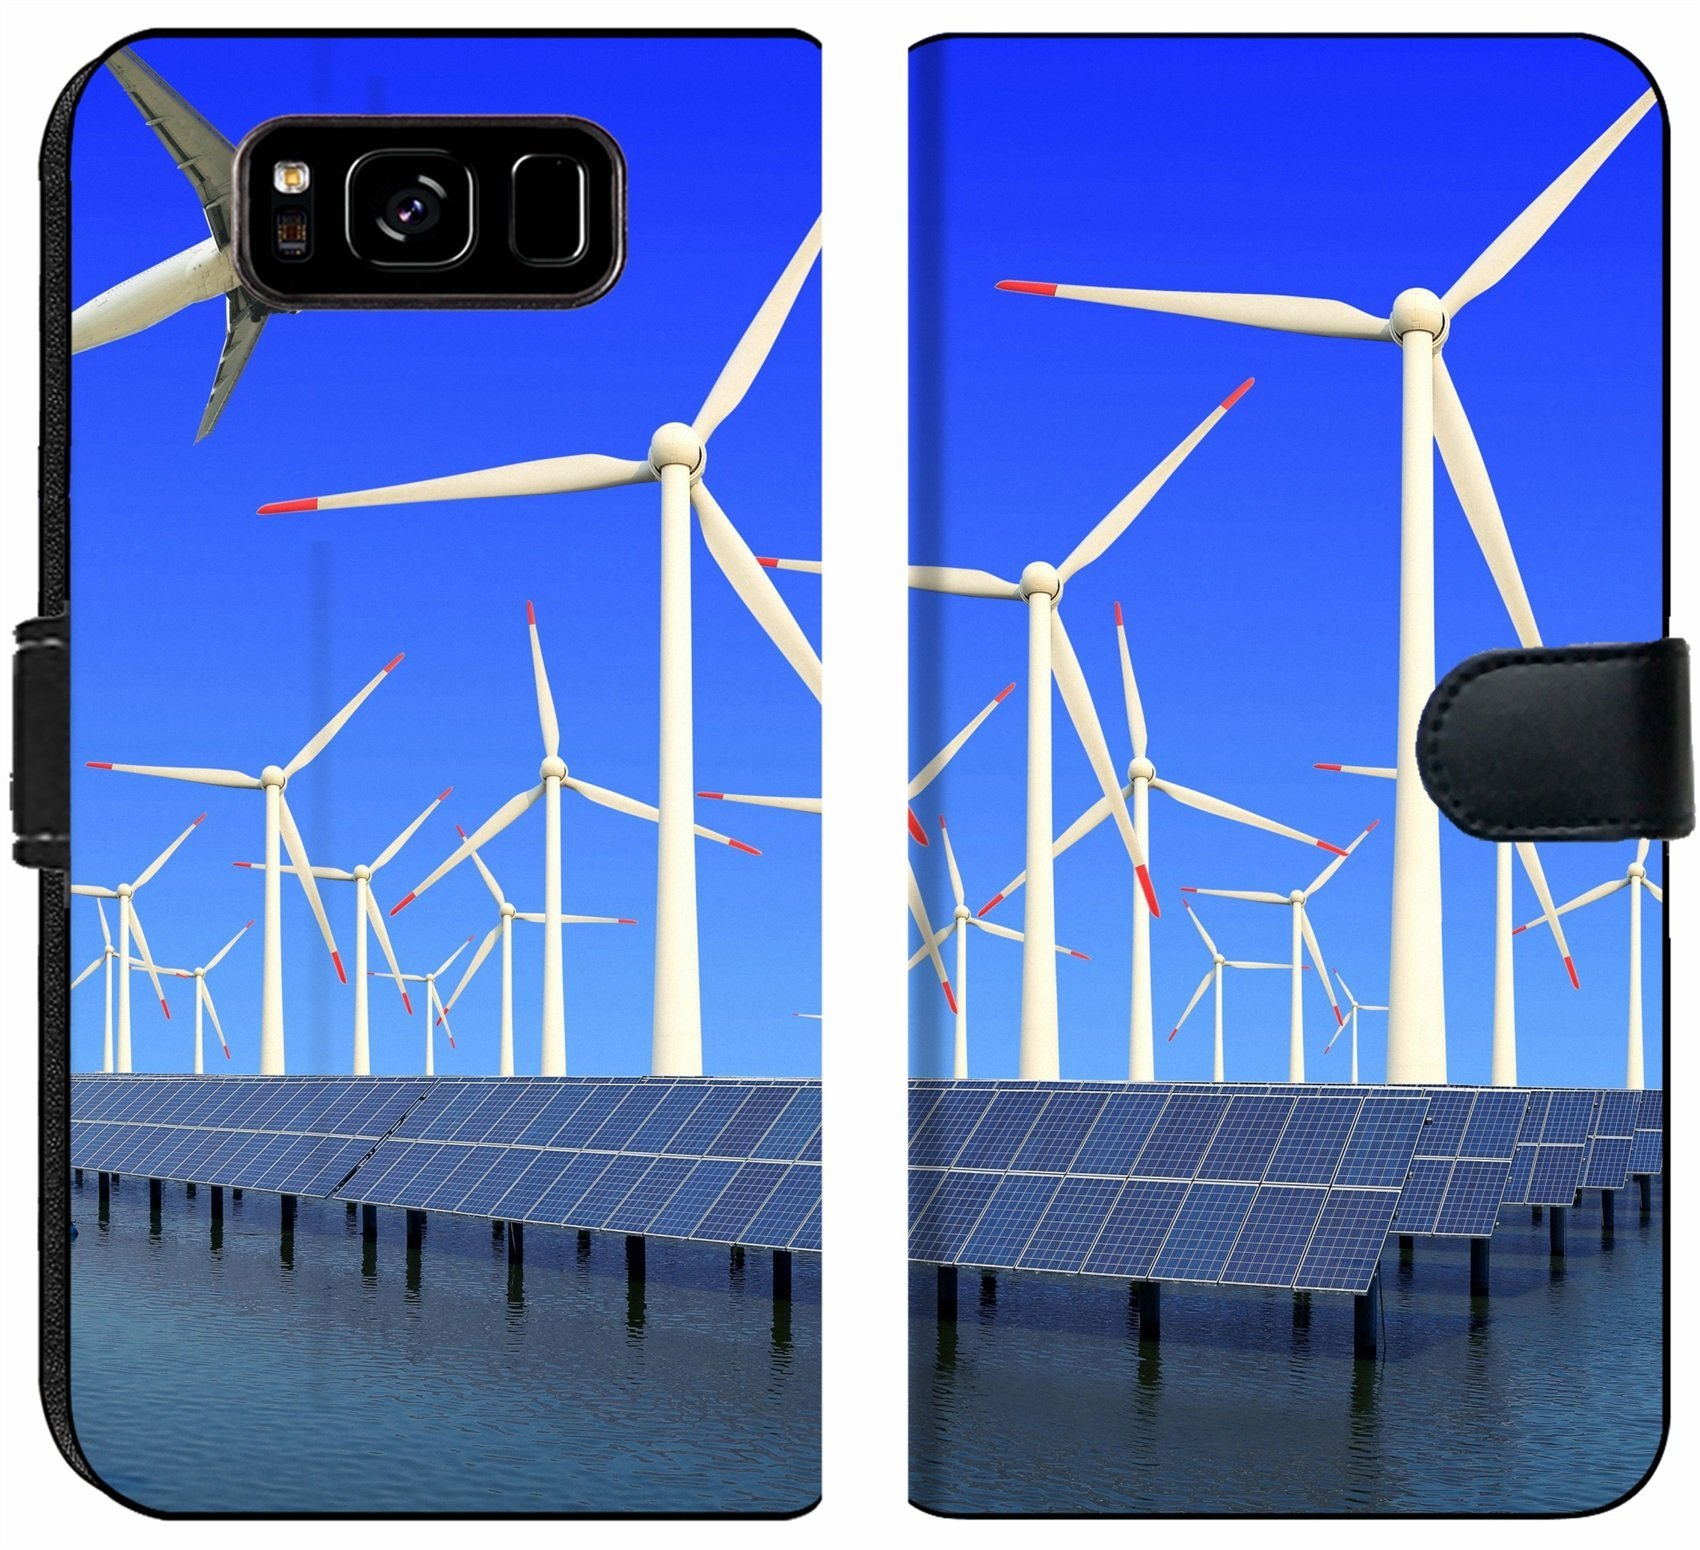 Samsung Galaxy S8 Flip Fabric Wallet Case Image ID 19576484 Aircraft is Flying in eco Power of Wind turbines and Solar Panel at c